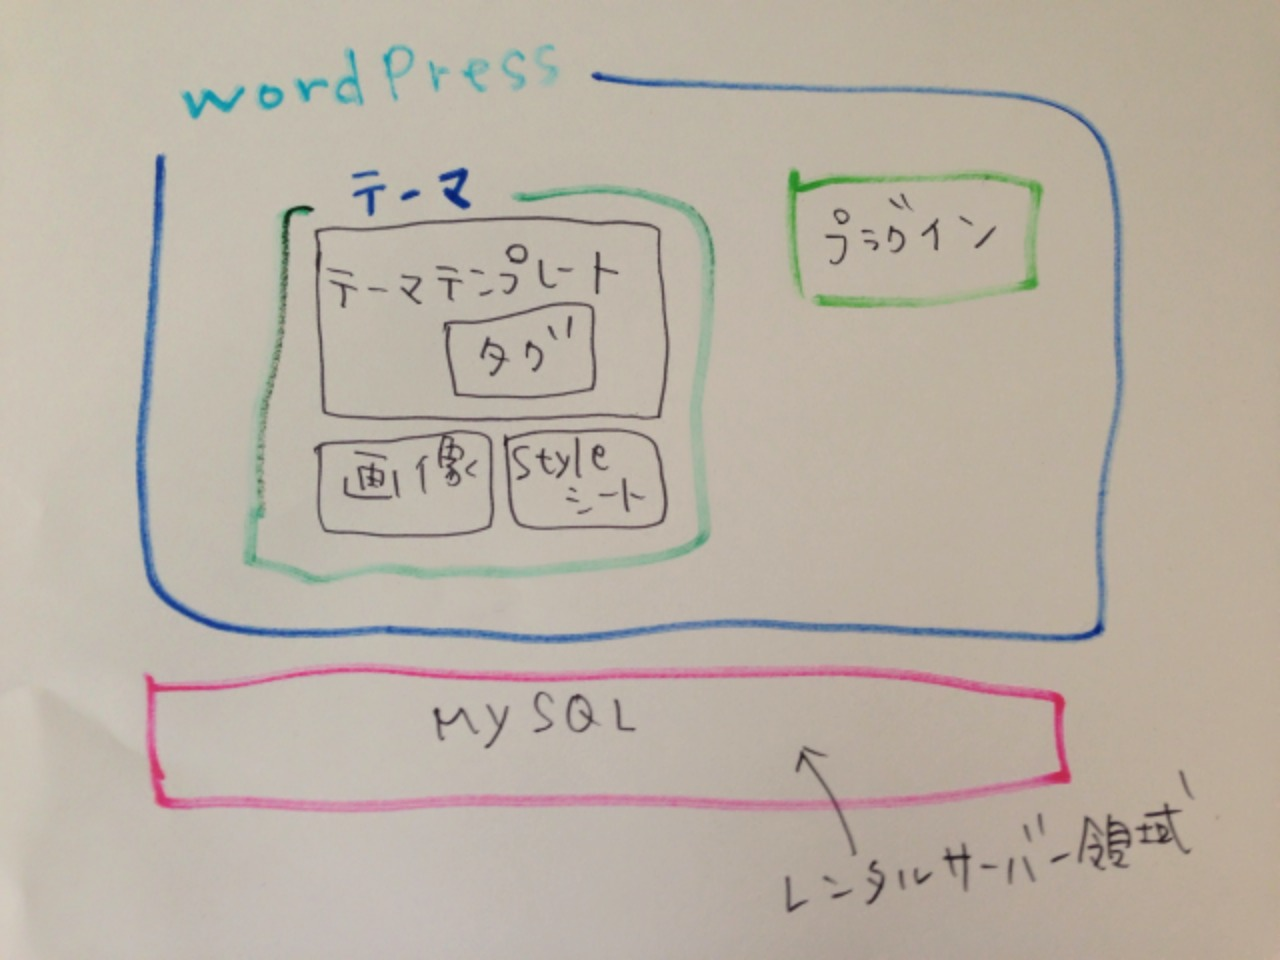 wordpressの構成